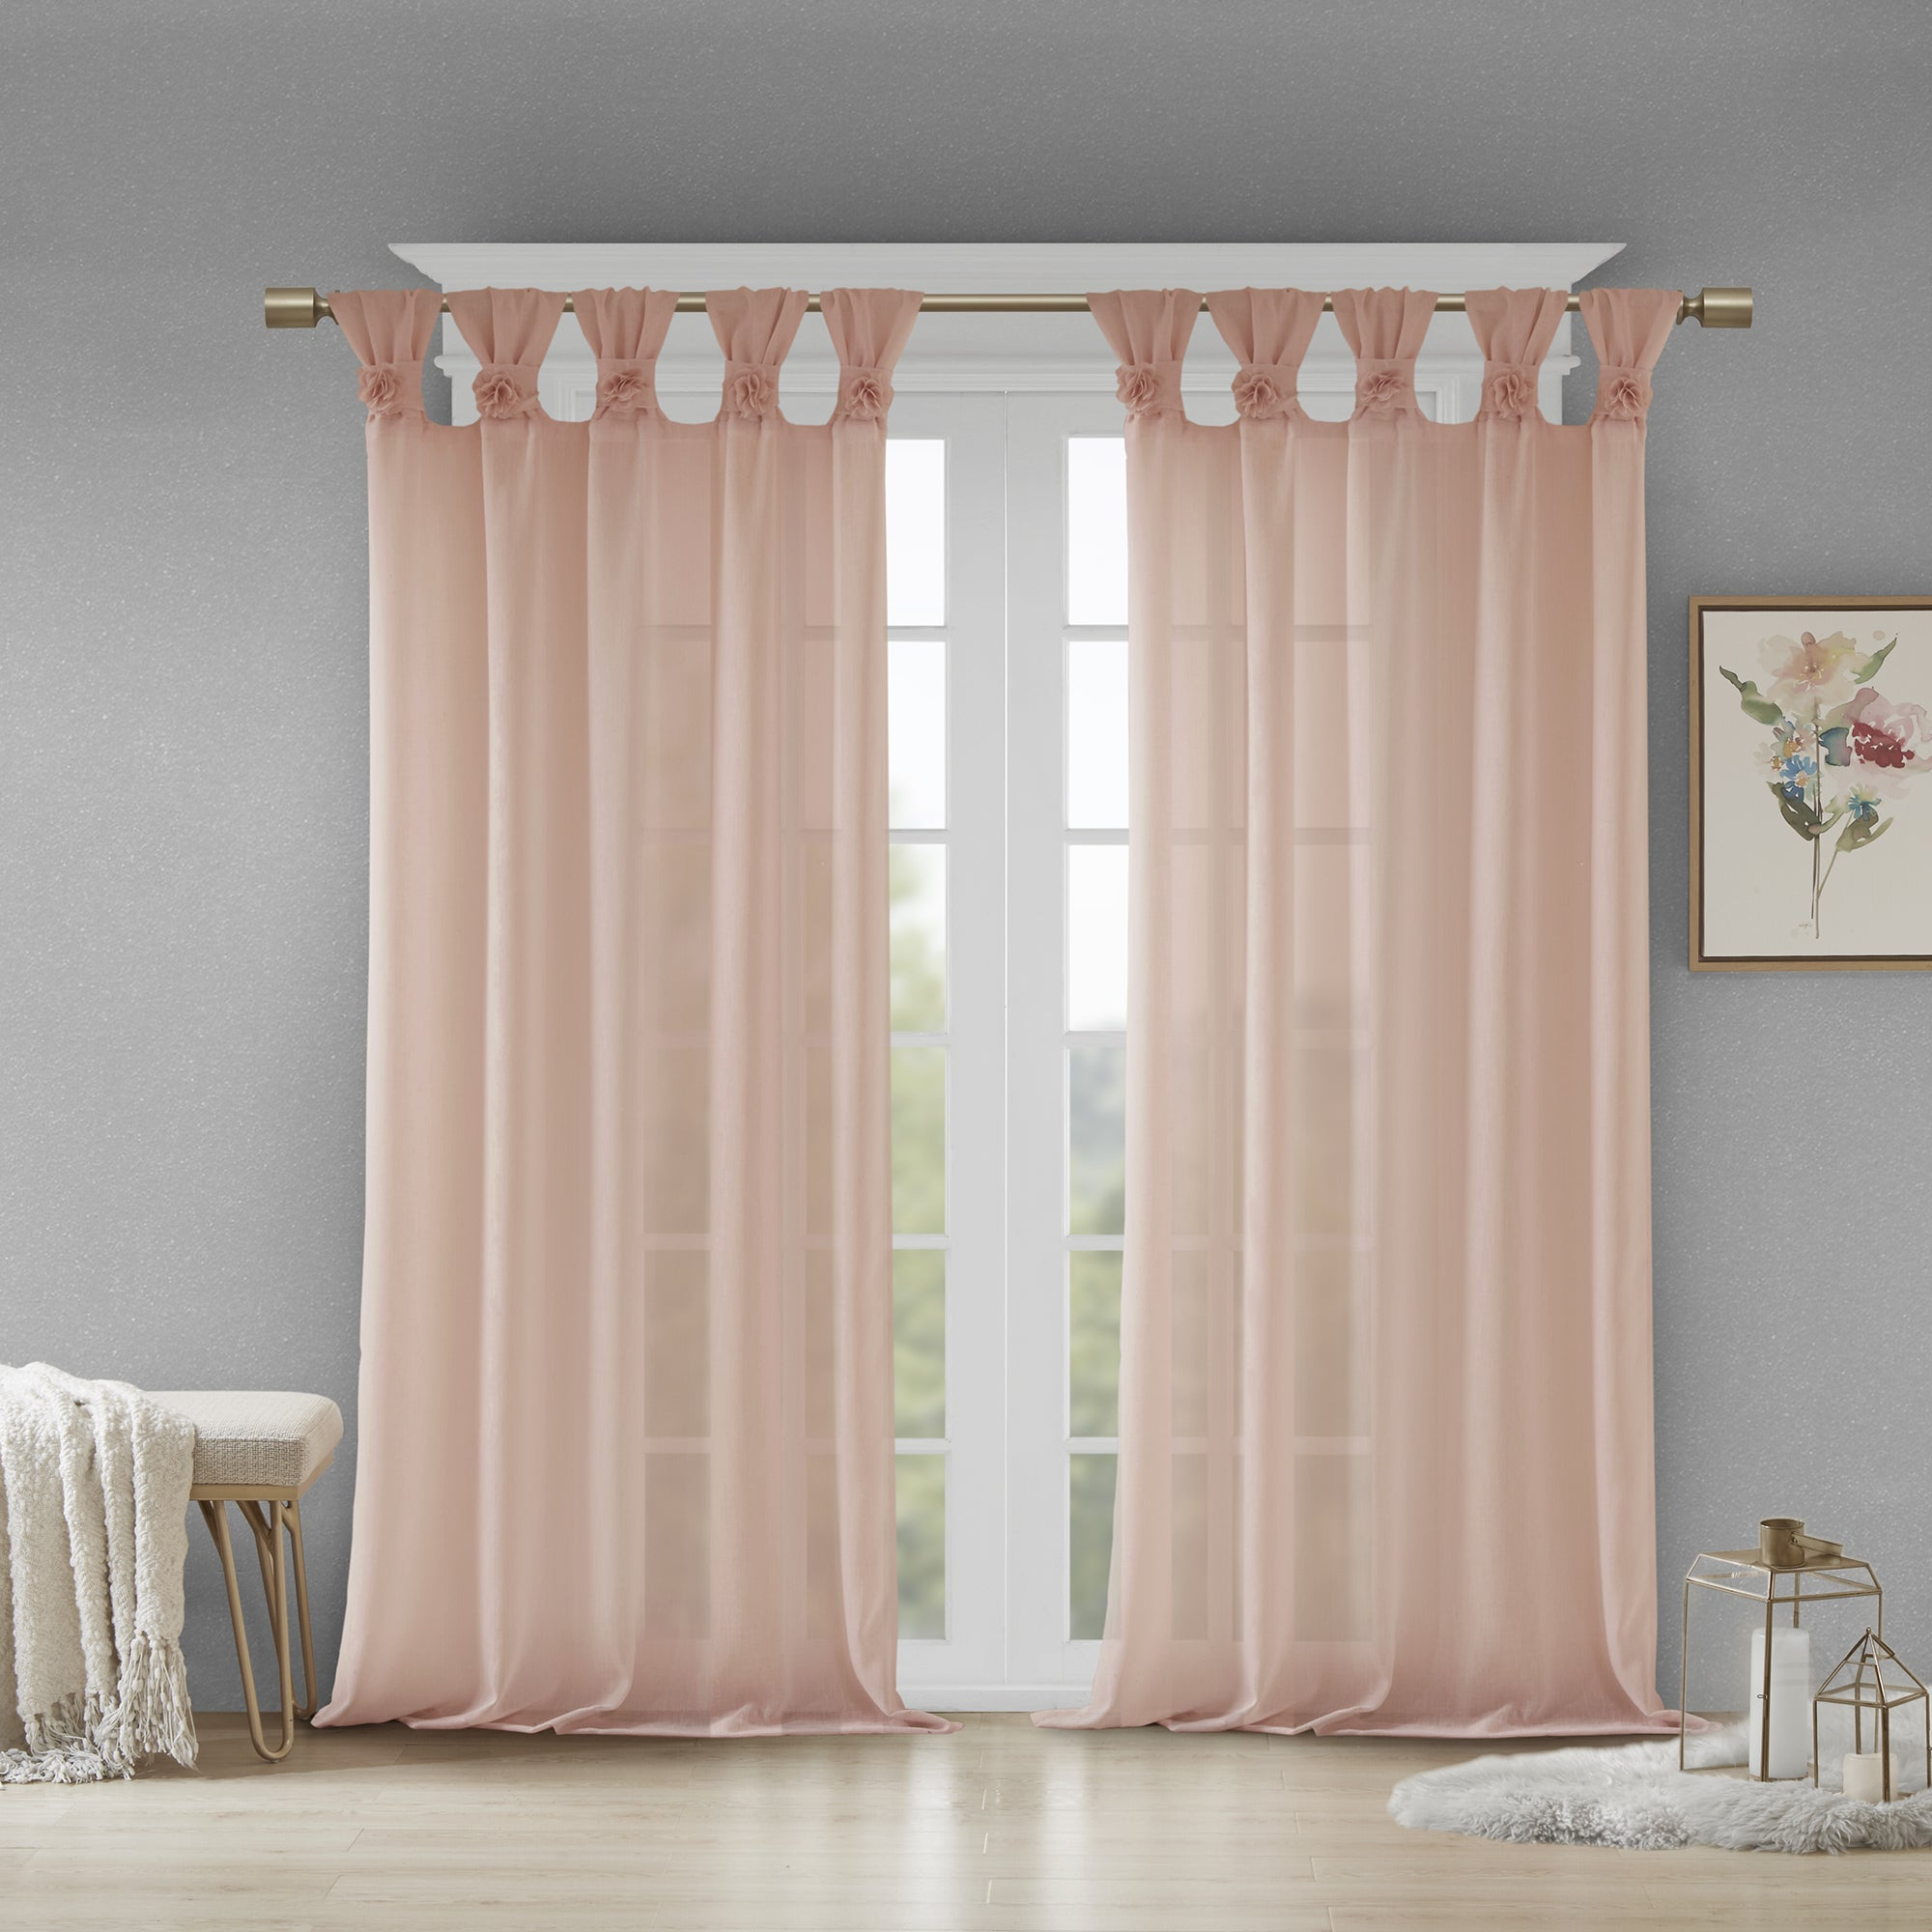 Widely Used Madison Park Florah Tab Top Sheer Single Curtain Panel Regarding Tab Top Sheer Single Curtain Panels (View 2 of 20)